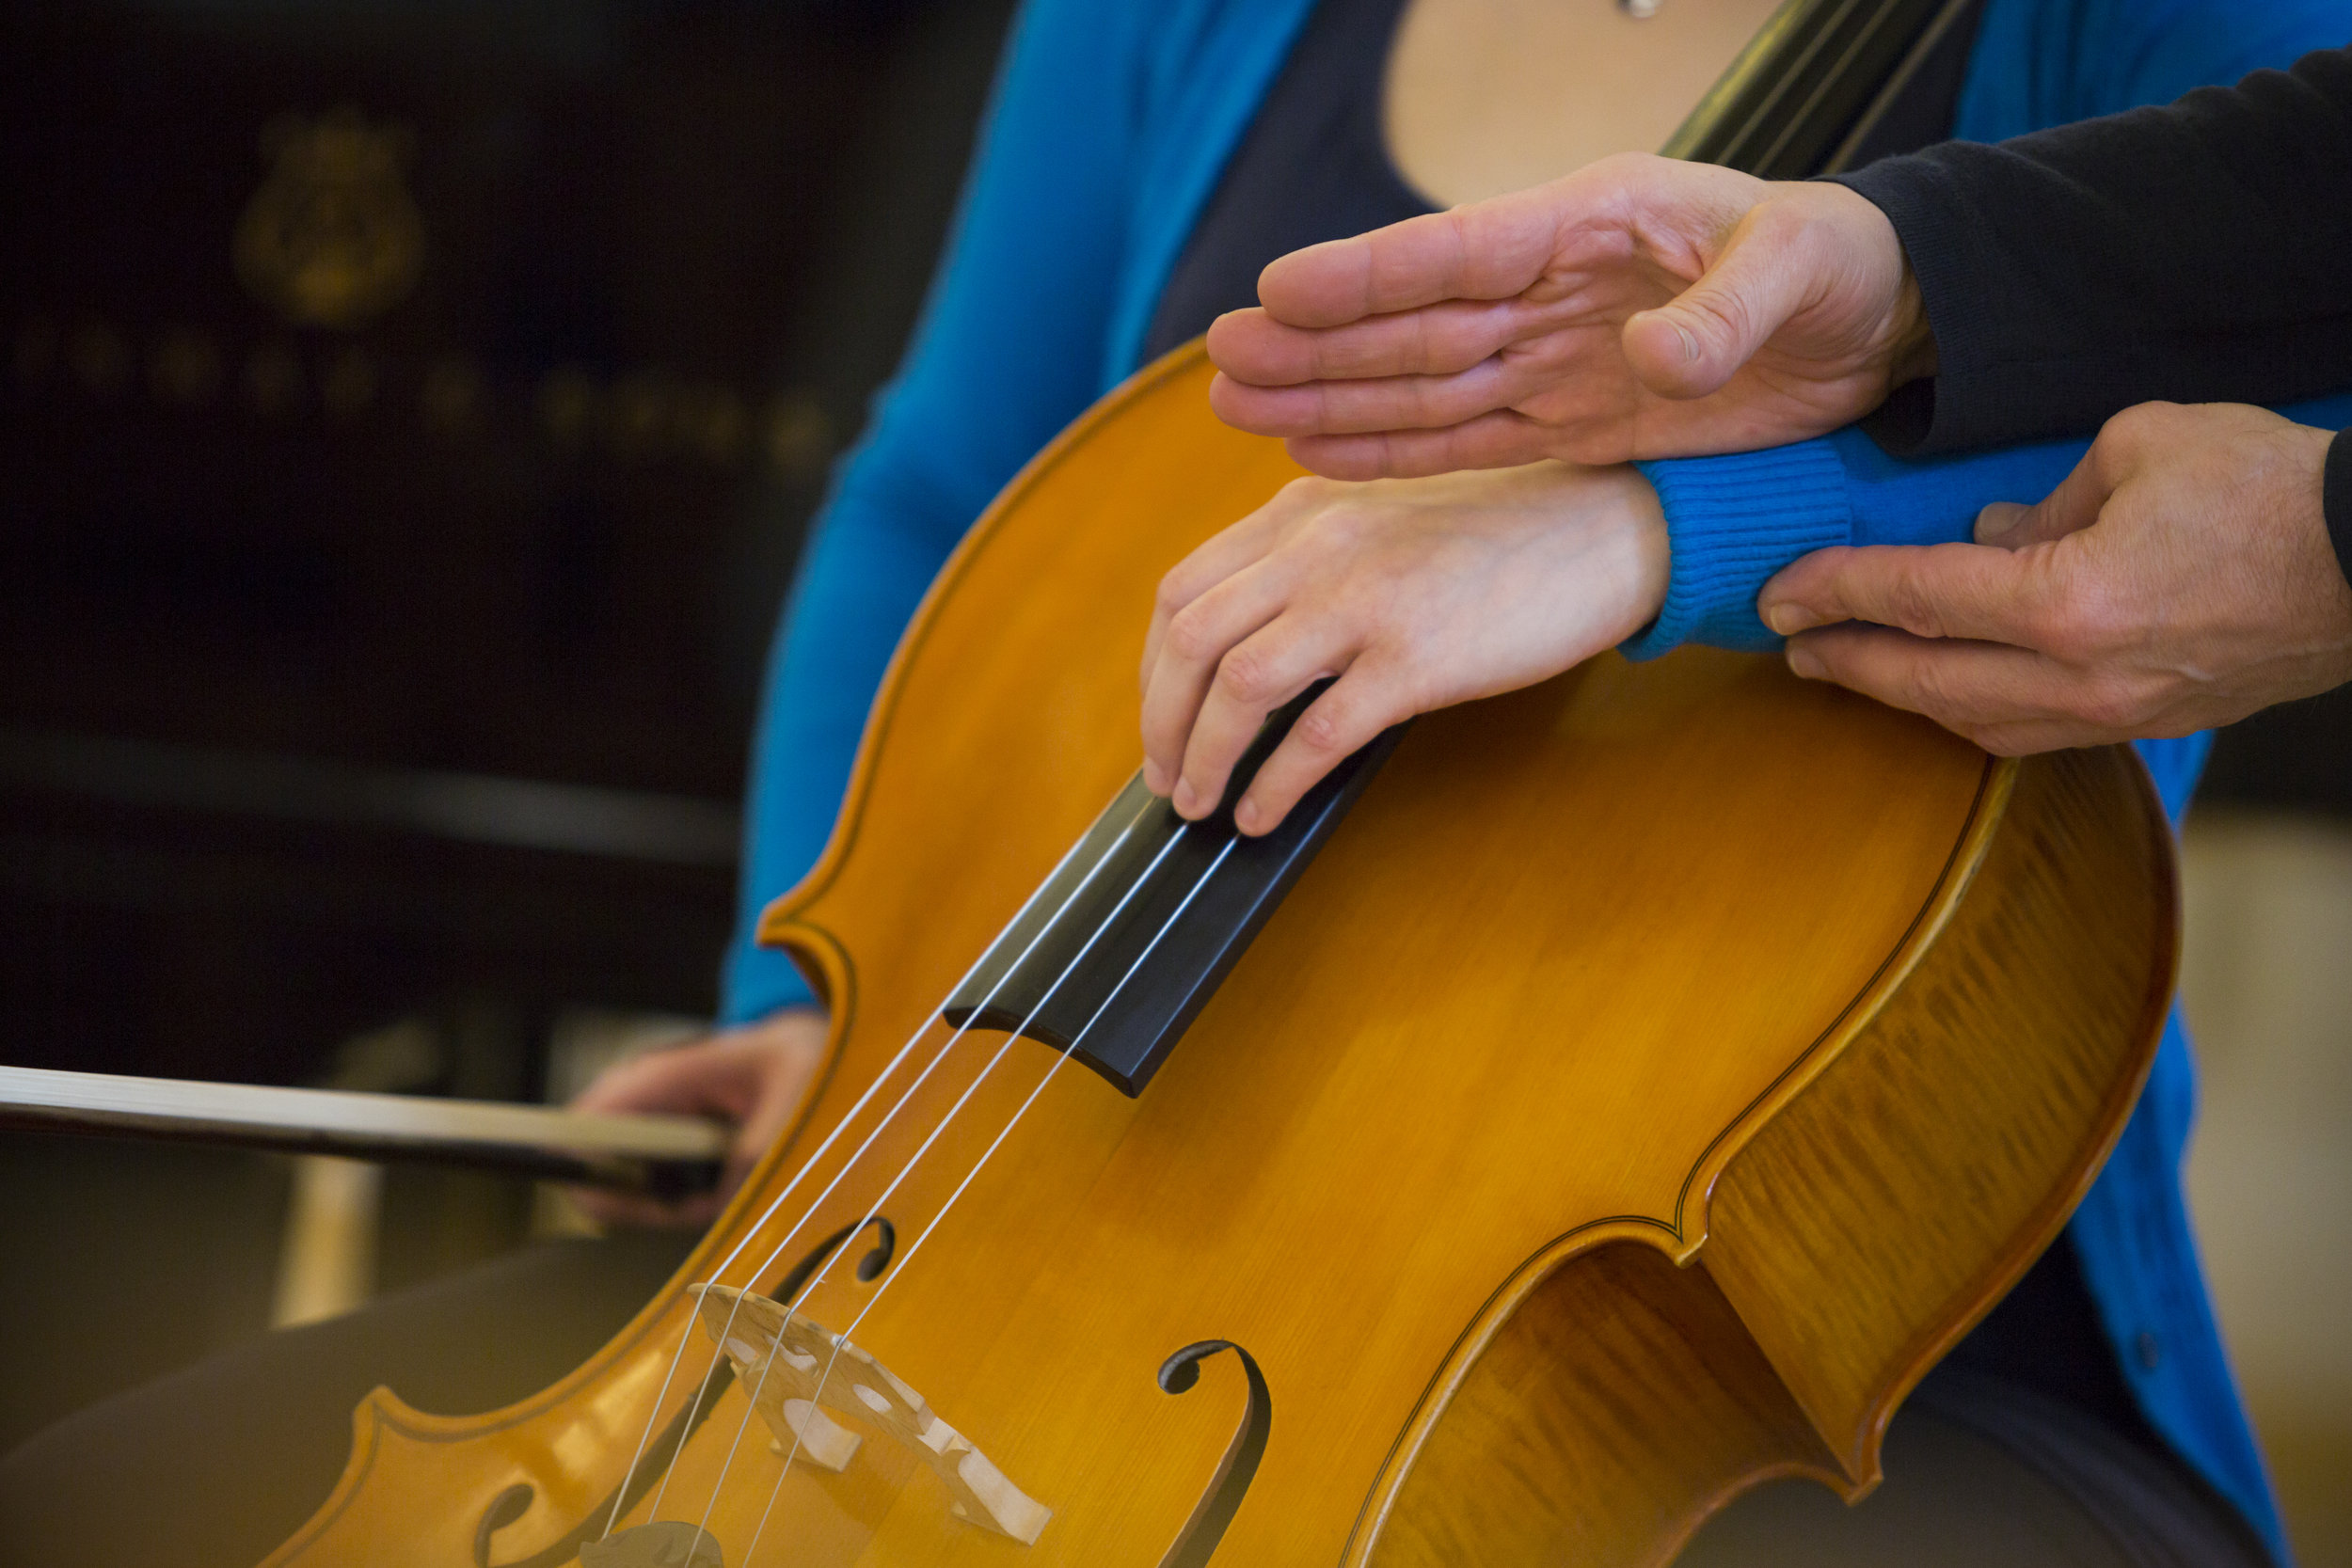 How Can Cello Clinic Help You? - Robert Cohen combines acute diagnostic skills with an intuitive, methodical and holistic approach. Working with the principles and fundamentals that have been the backbone of his own methods for healthy, free and natural music-making, he assesses his client's situation and develops tailor-made solutions.